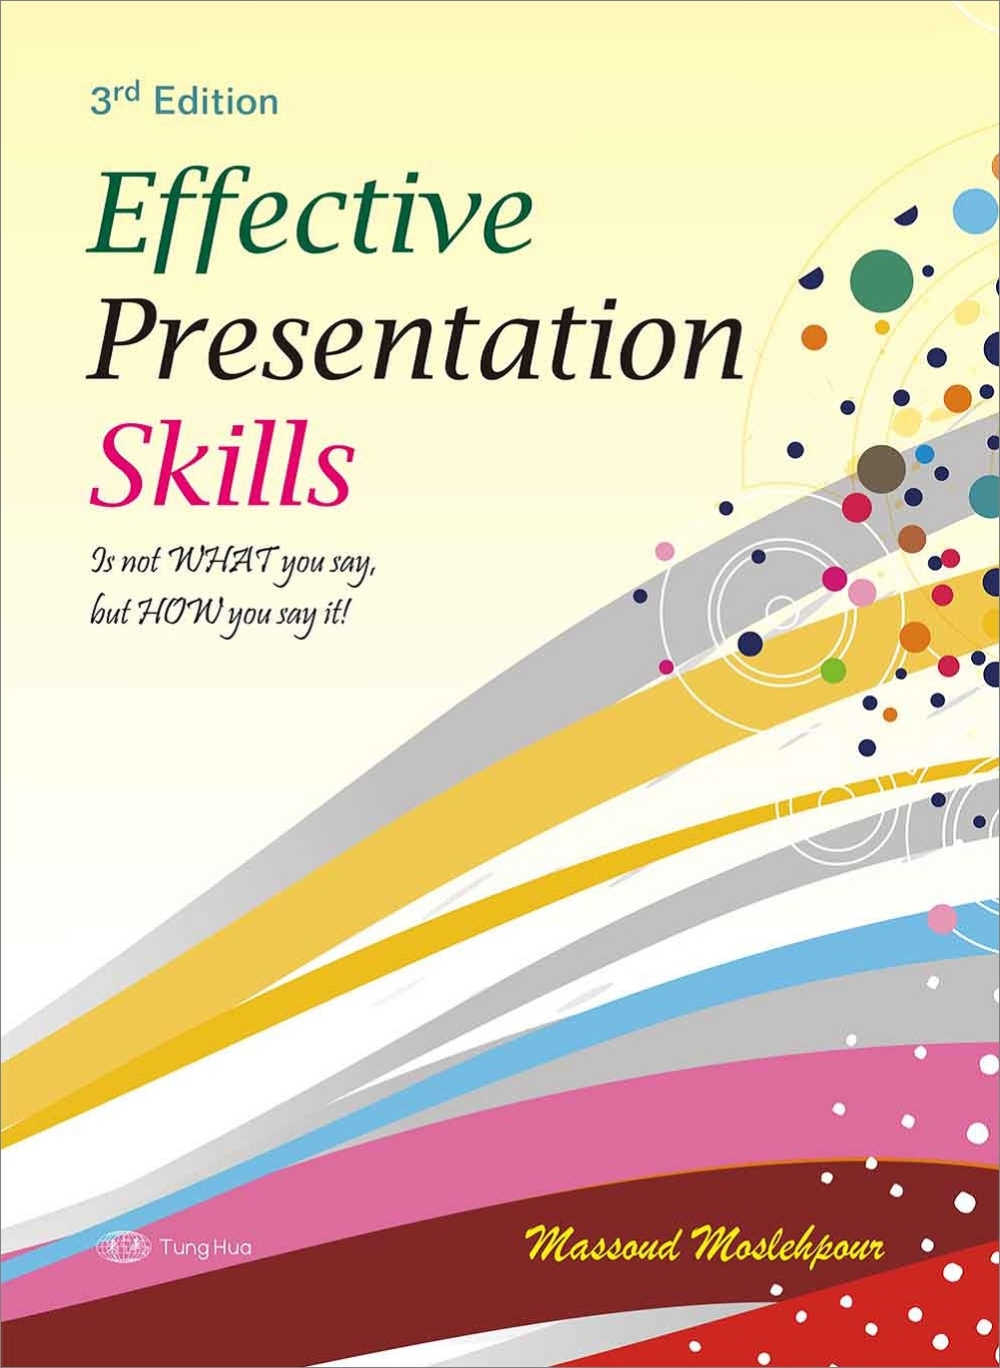 Effective Presentation Skills with CD/1片 三版